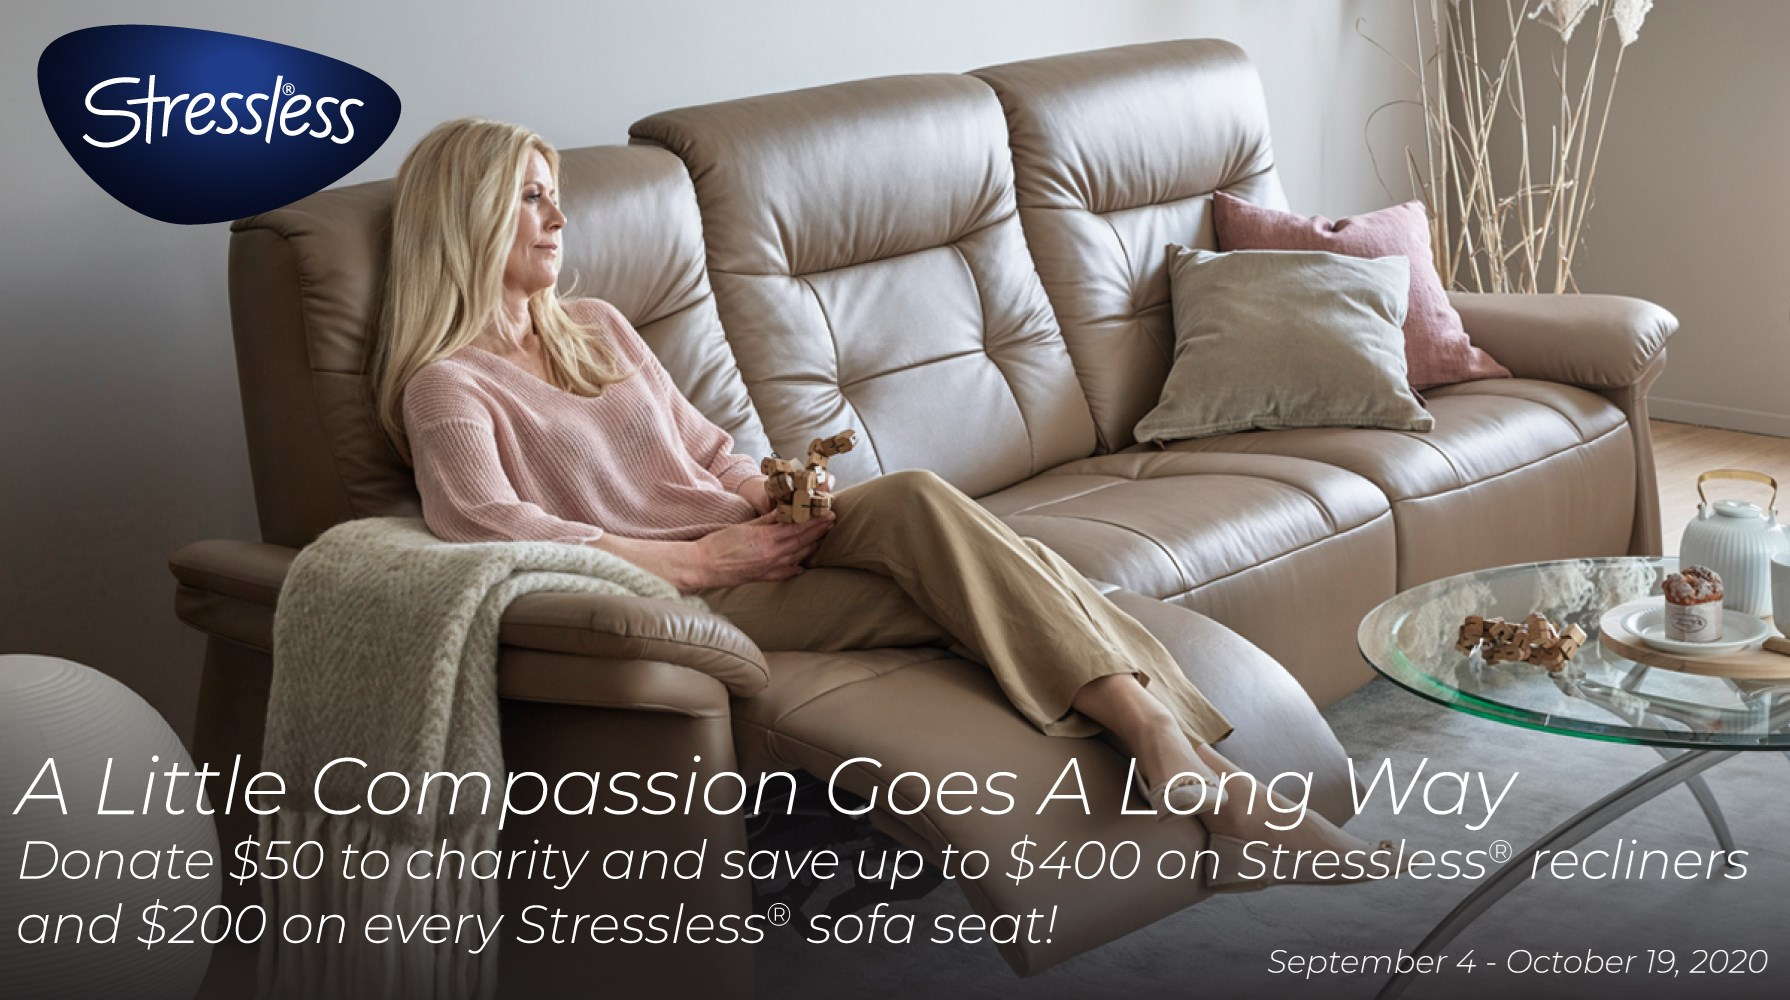 Stressless Promotion - A little compassion goes a long way